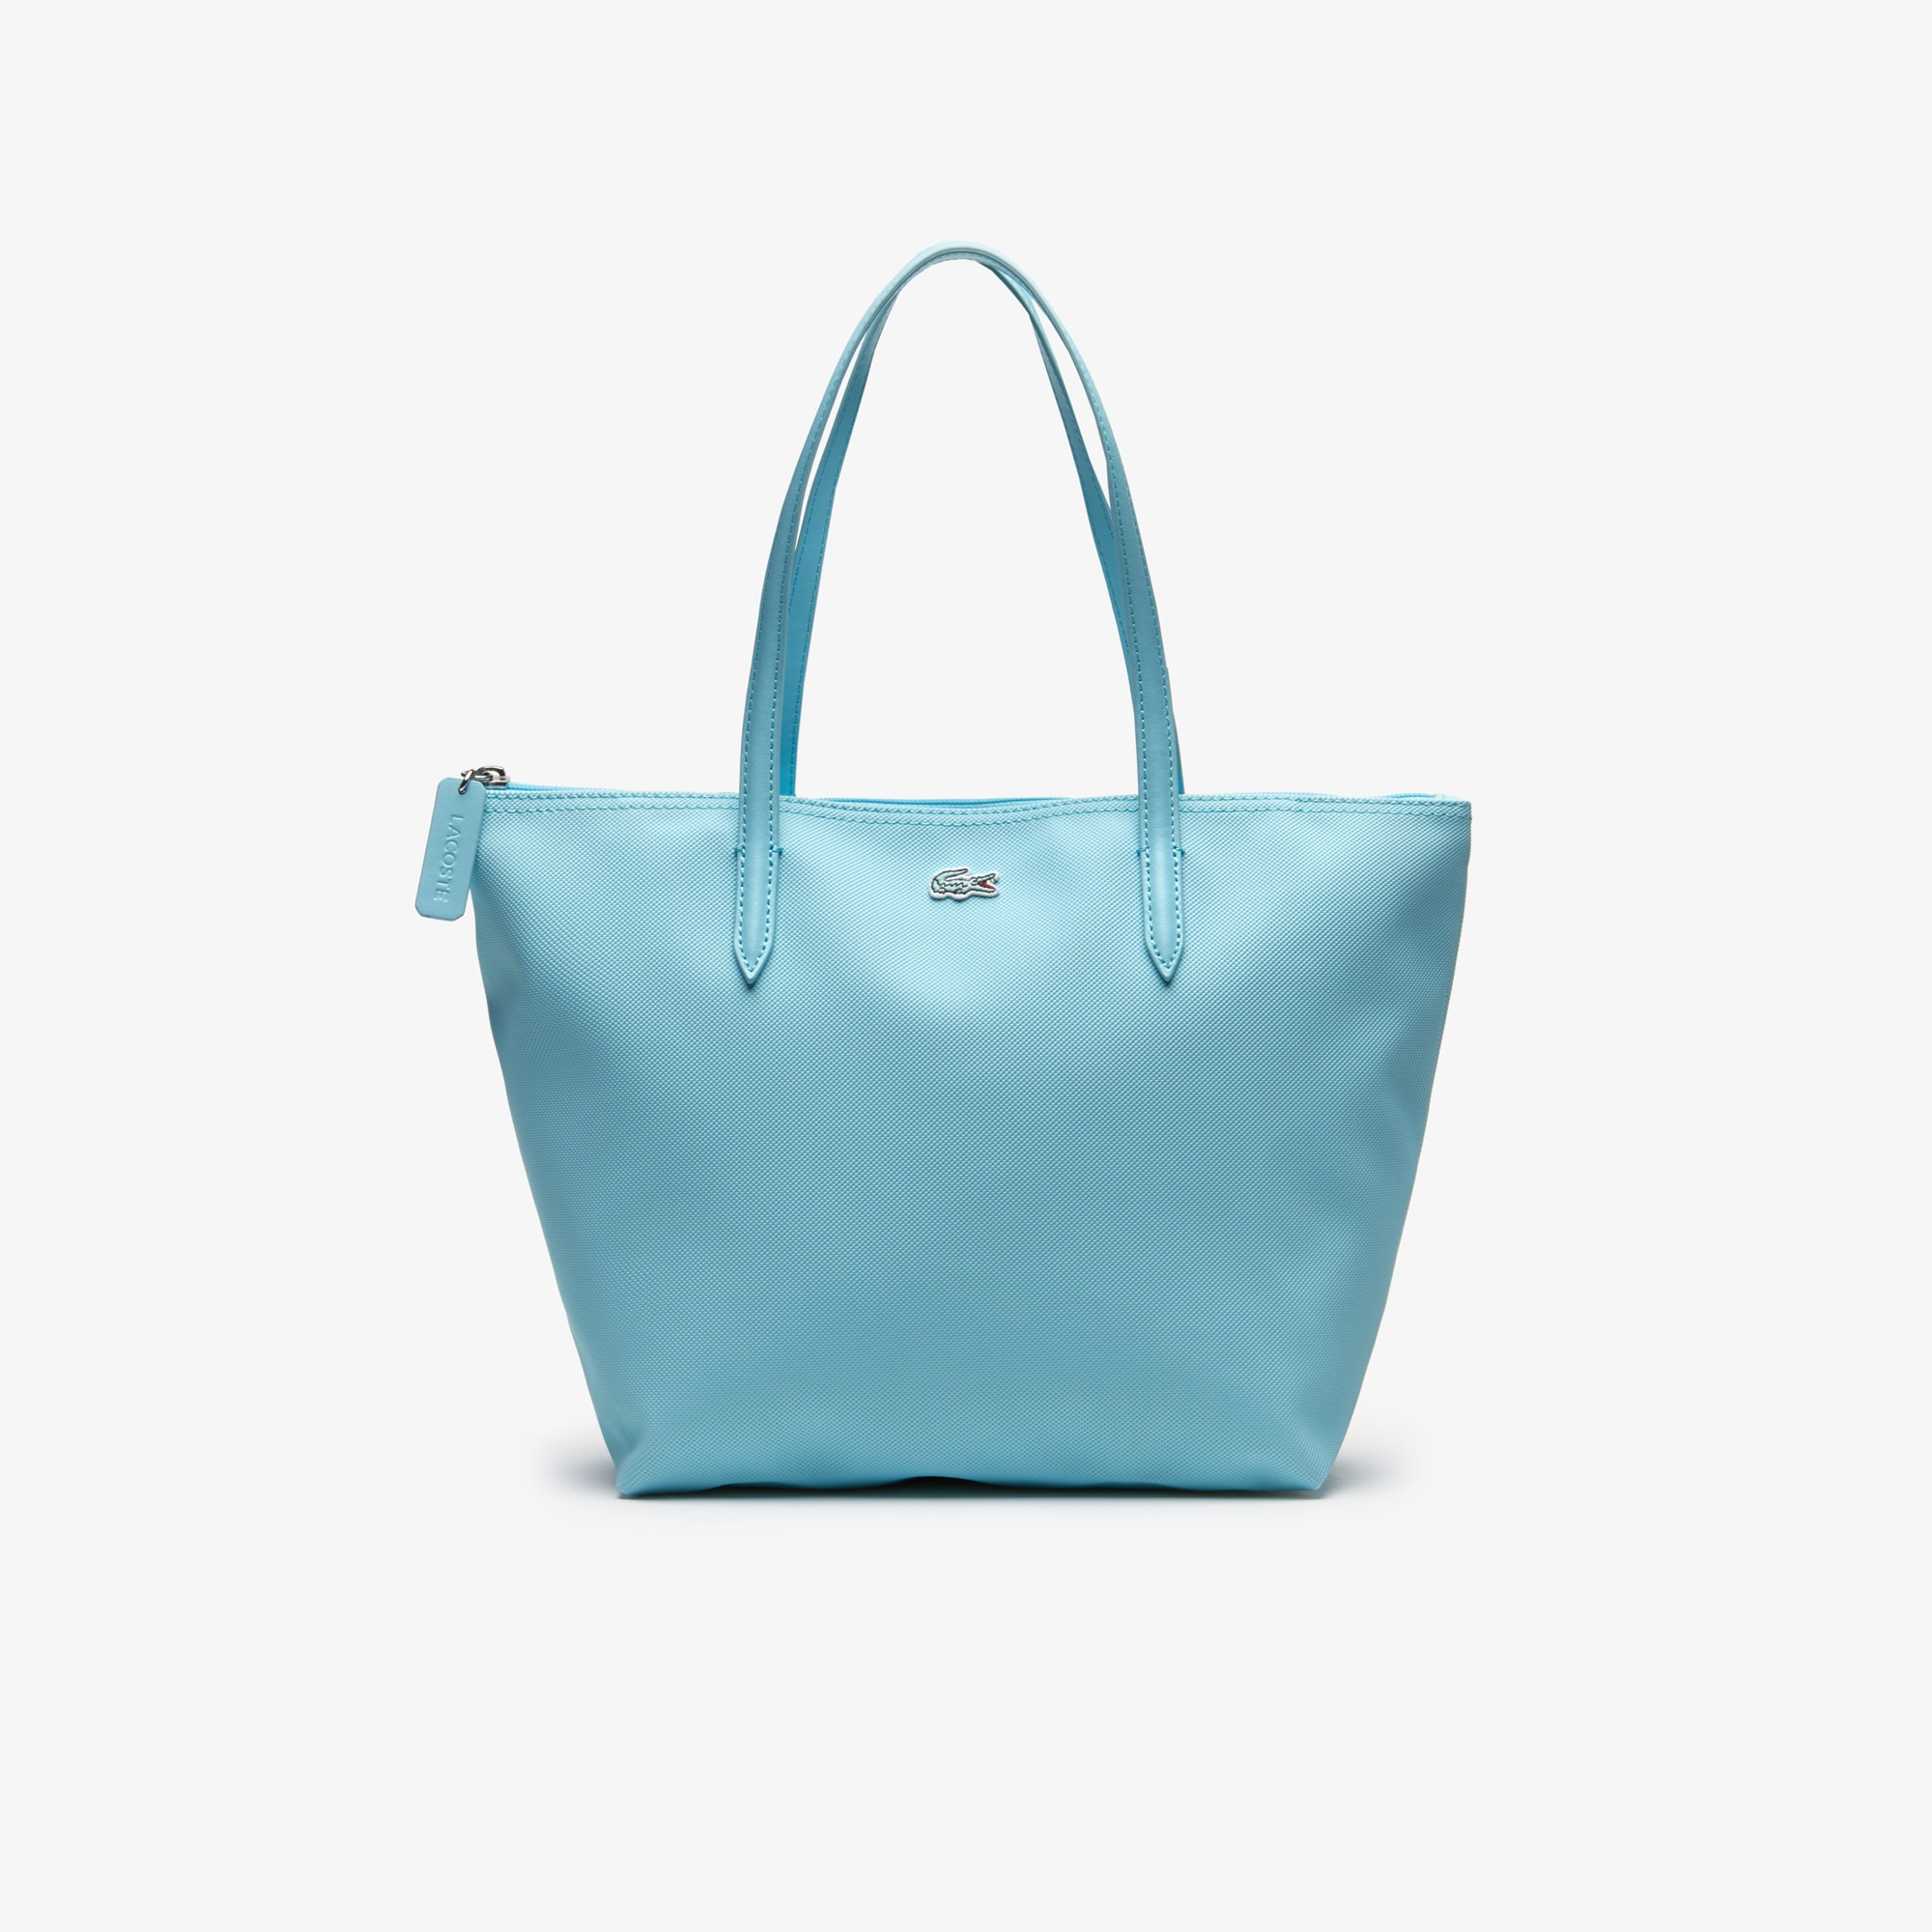 96414f4233 Bags & Handbags Collection | Women's Leather Goods | LACOSTE